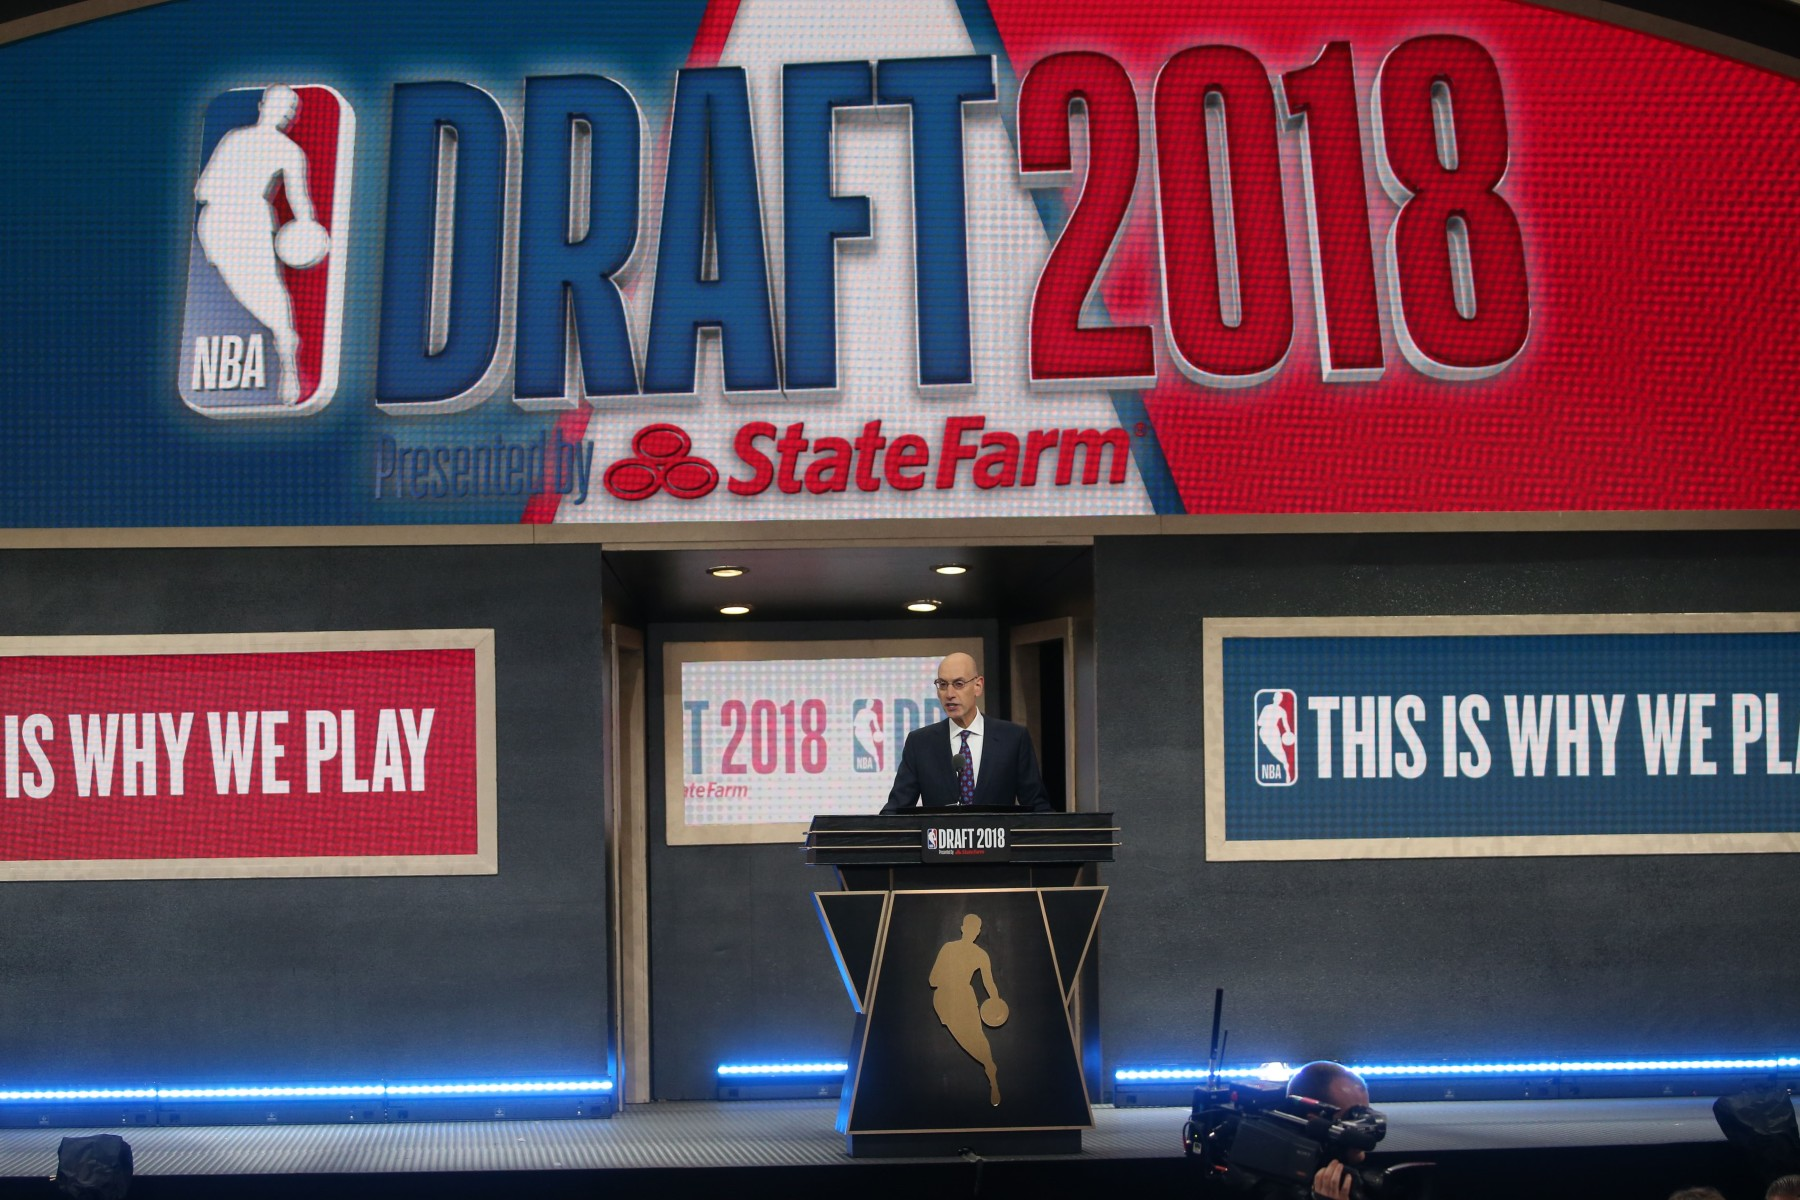 NBA Commissioner Adam Silver speaks ahead of the 2018 NBA Draft at the Barclays Center on June 21, 2018 in the Brooklyn borough of New York, United States.  (Mohammed Elshamy/Anadolu Agency/Getty Images)